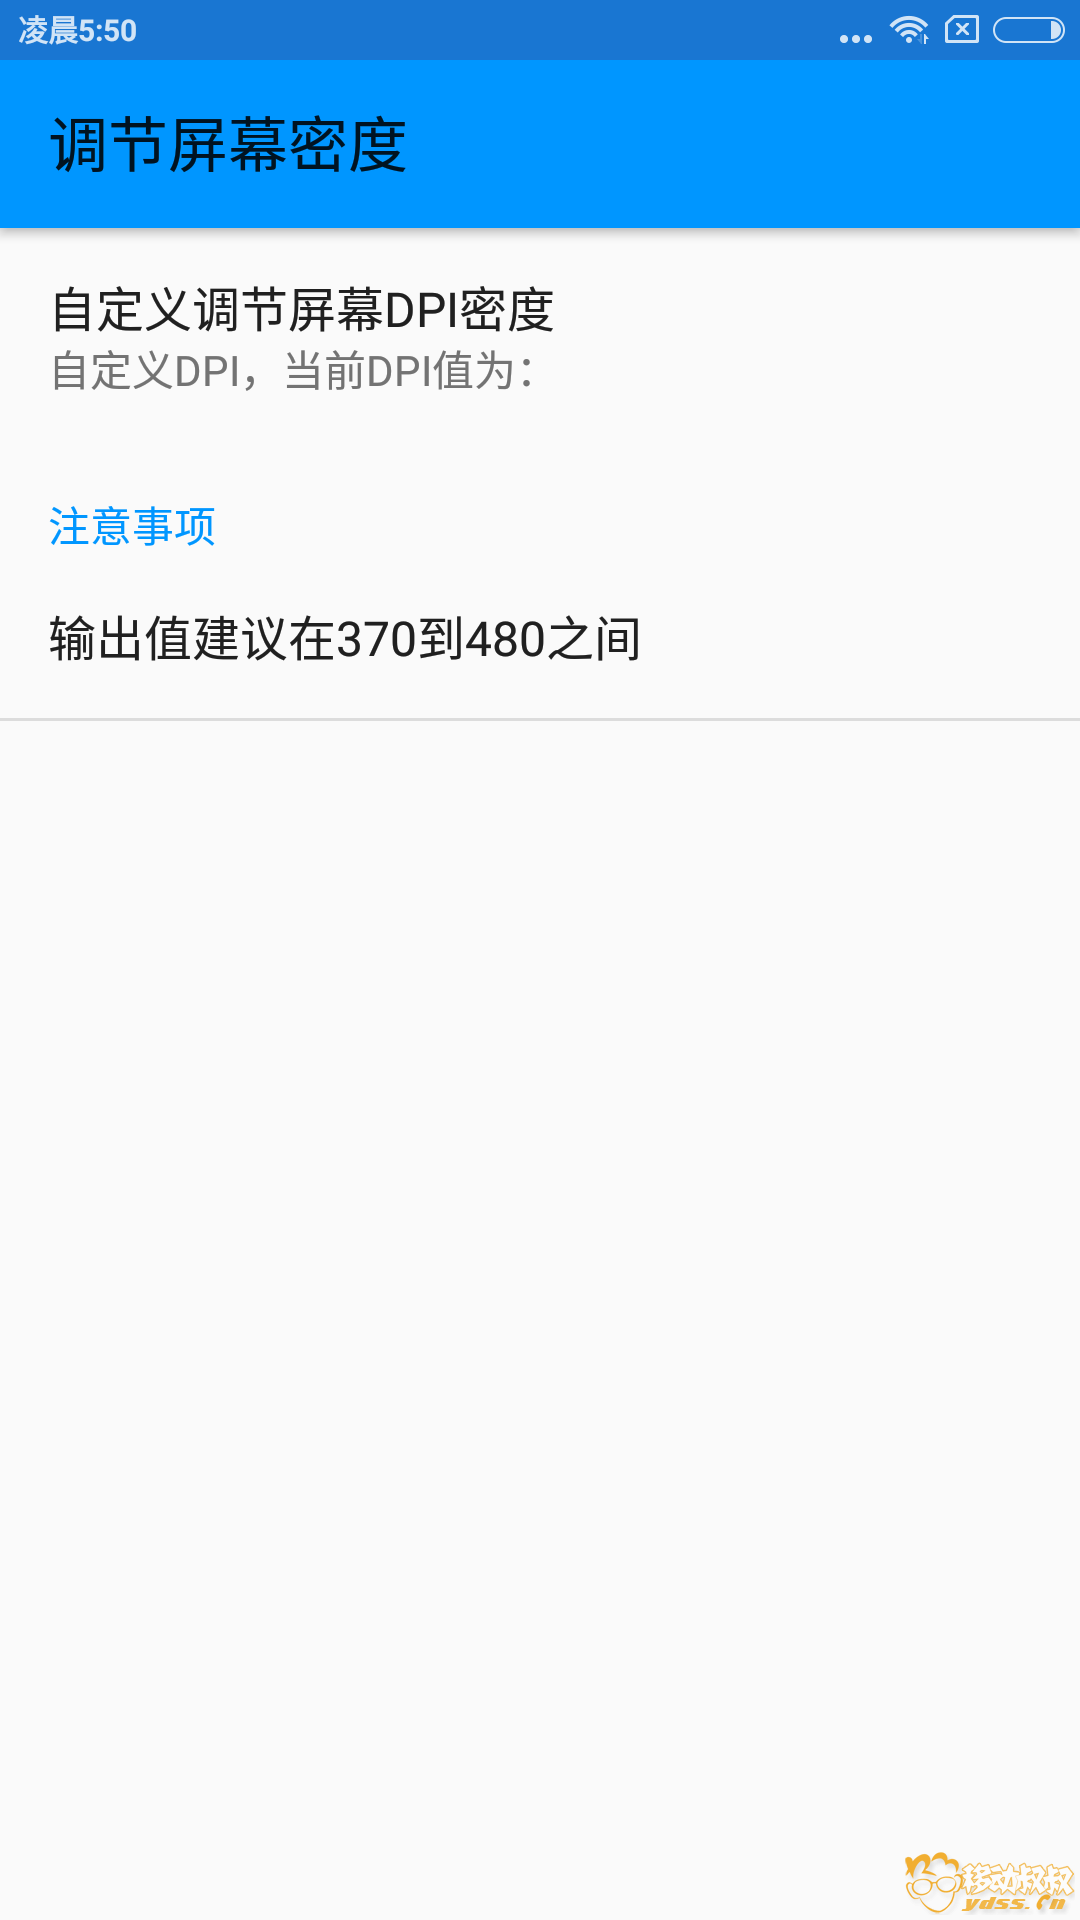 Screenshot_2018-03-13-05-50-07-839_com.zhanhong.tools.png